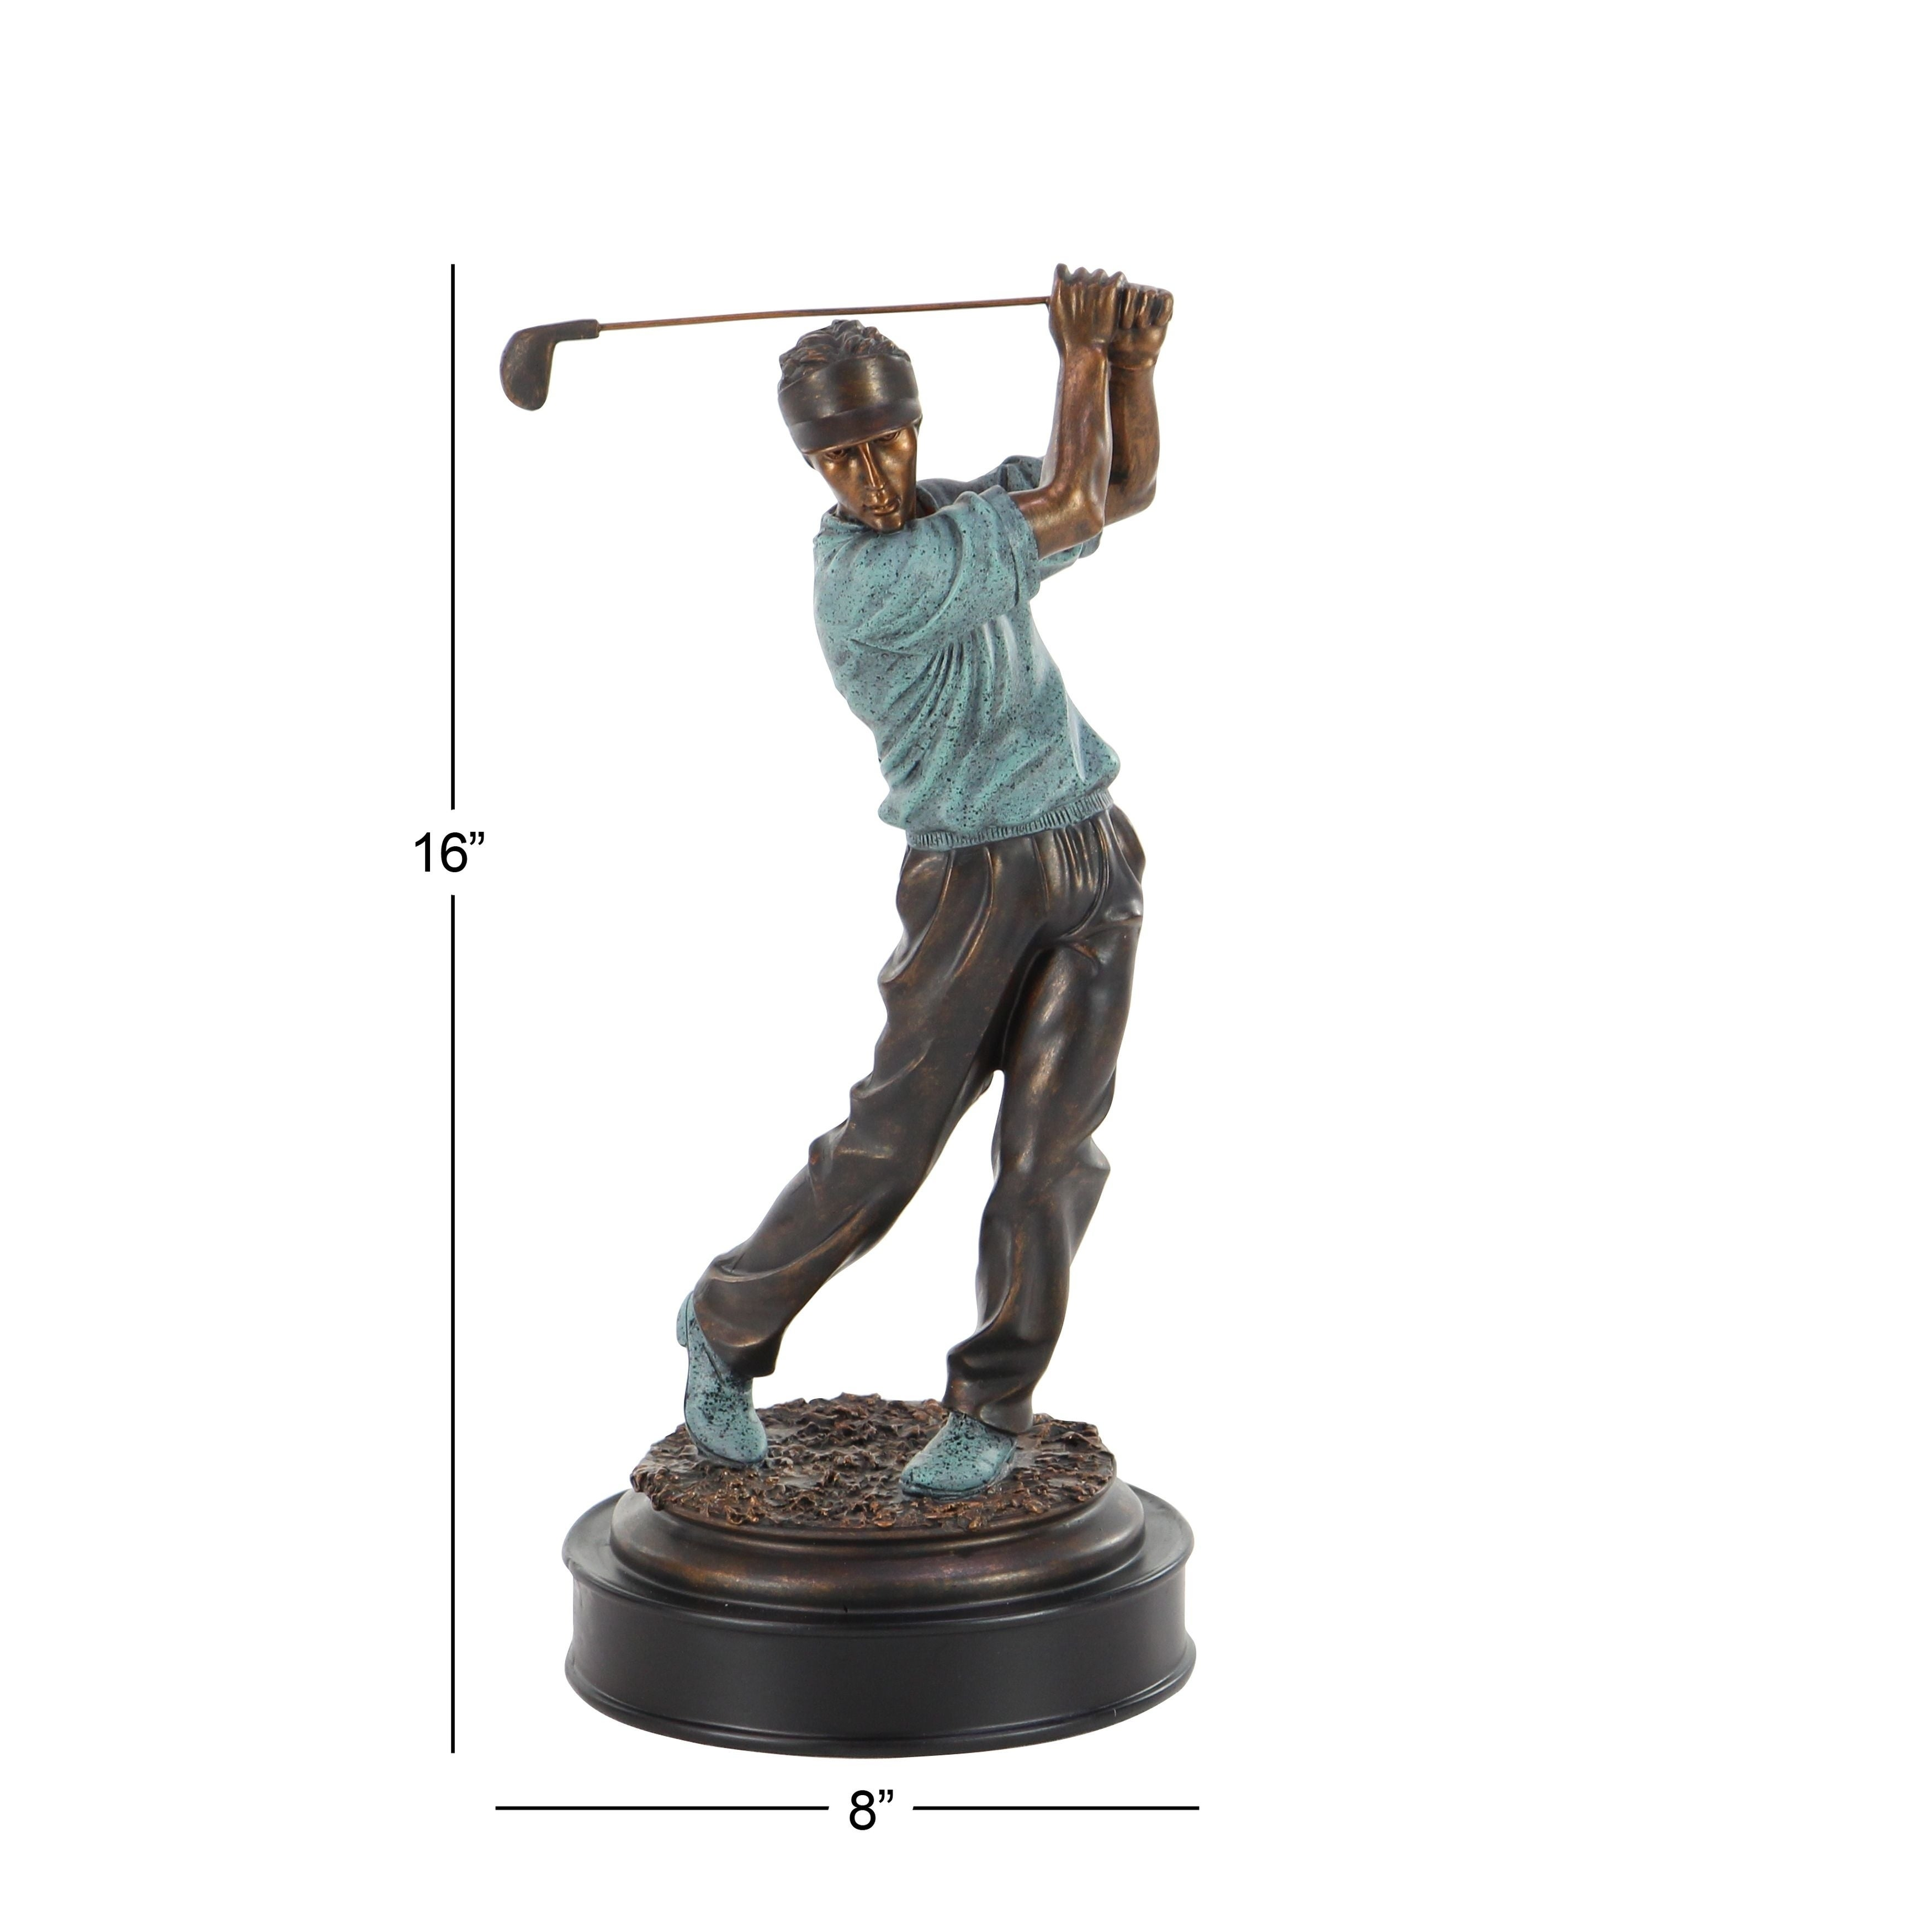 Shop Copper Grove Chatfield Modern Ceramic Swinging Golf Player Sculpture    Free Shipping On Orders Over $45   Overstock.com   21065824